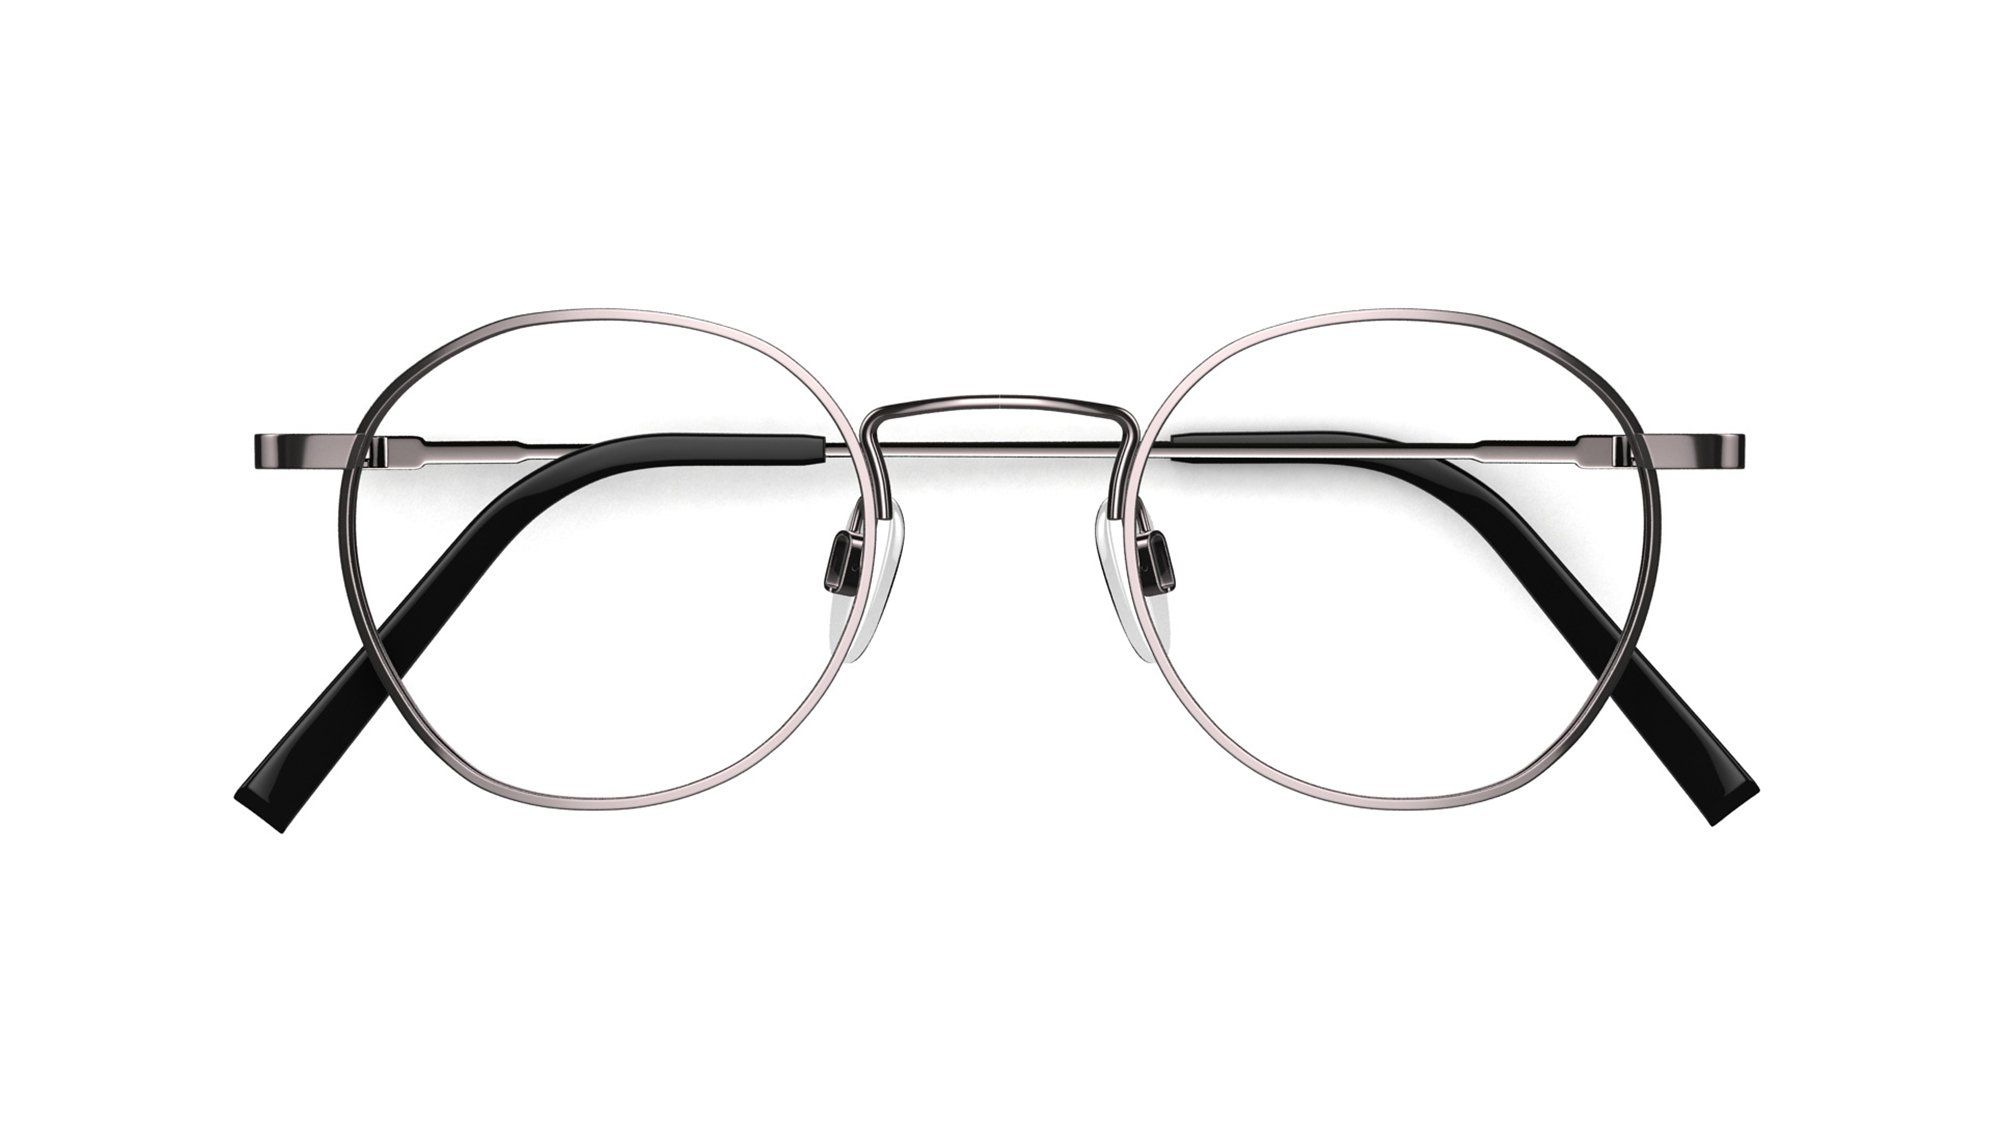 Specsavers Opticians offer a great choice of glasses